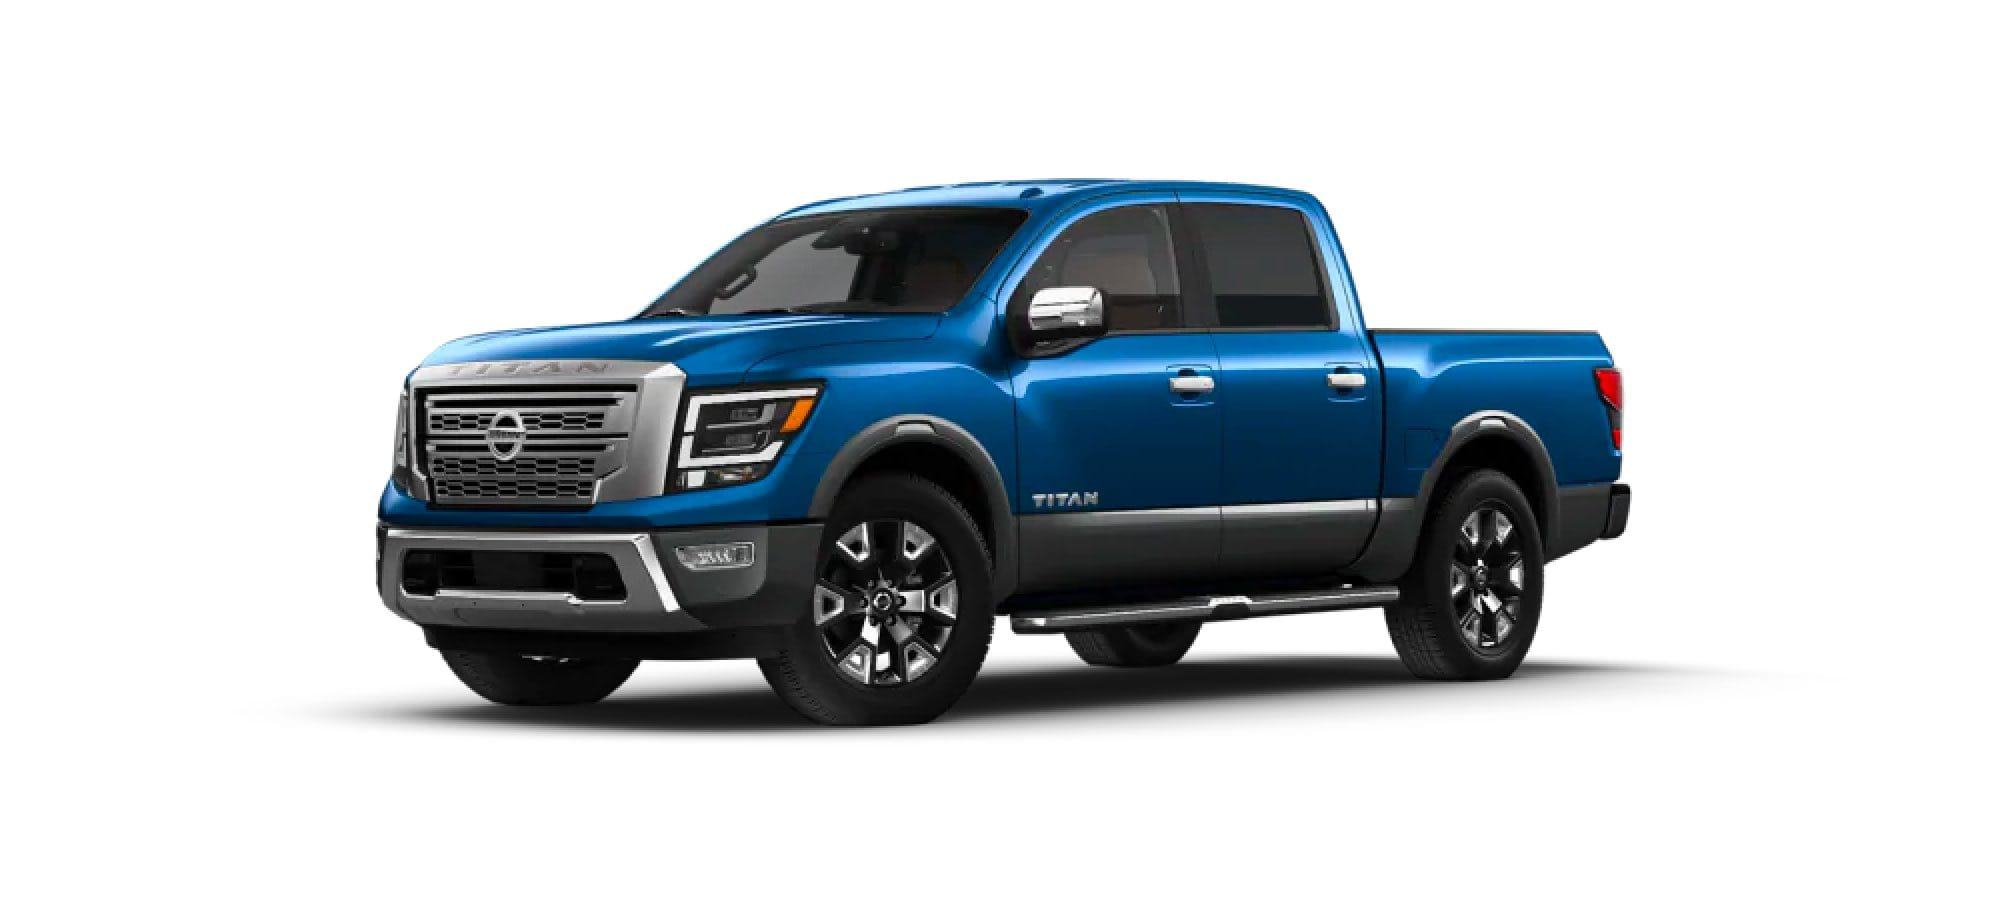 Deep Blue Pearl Metallic/Gun Metallic Nissan TITAN